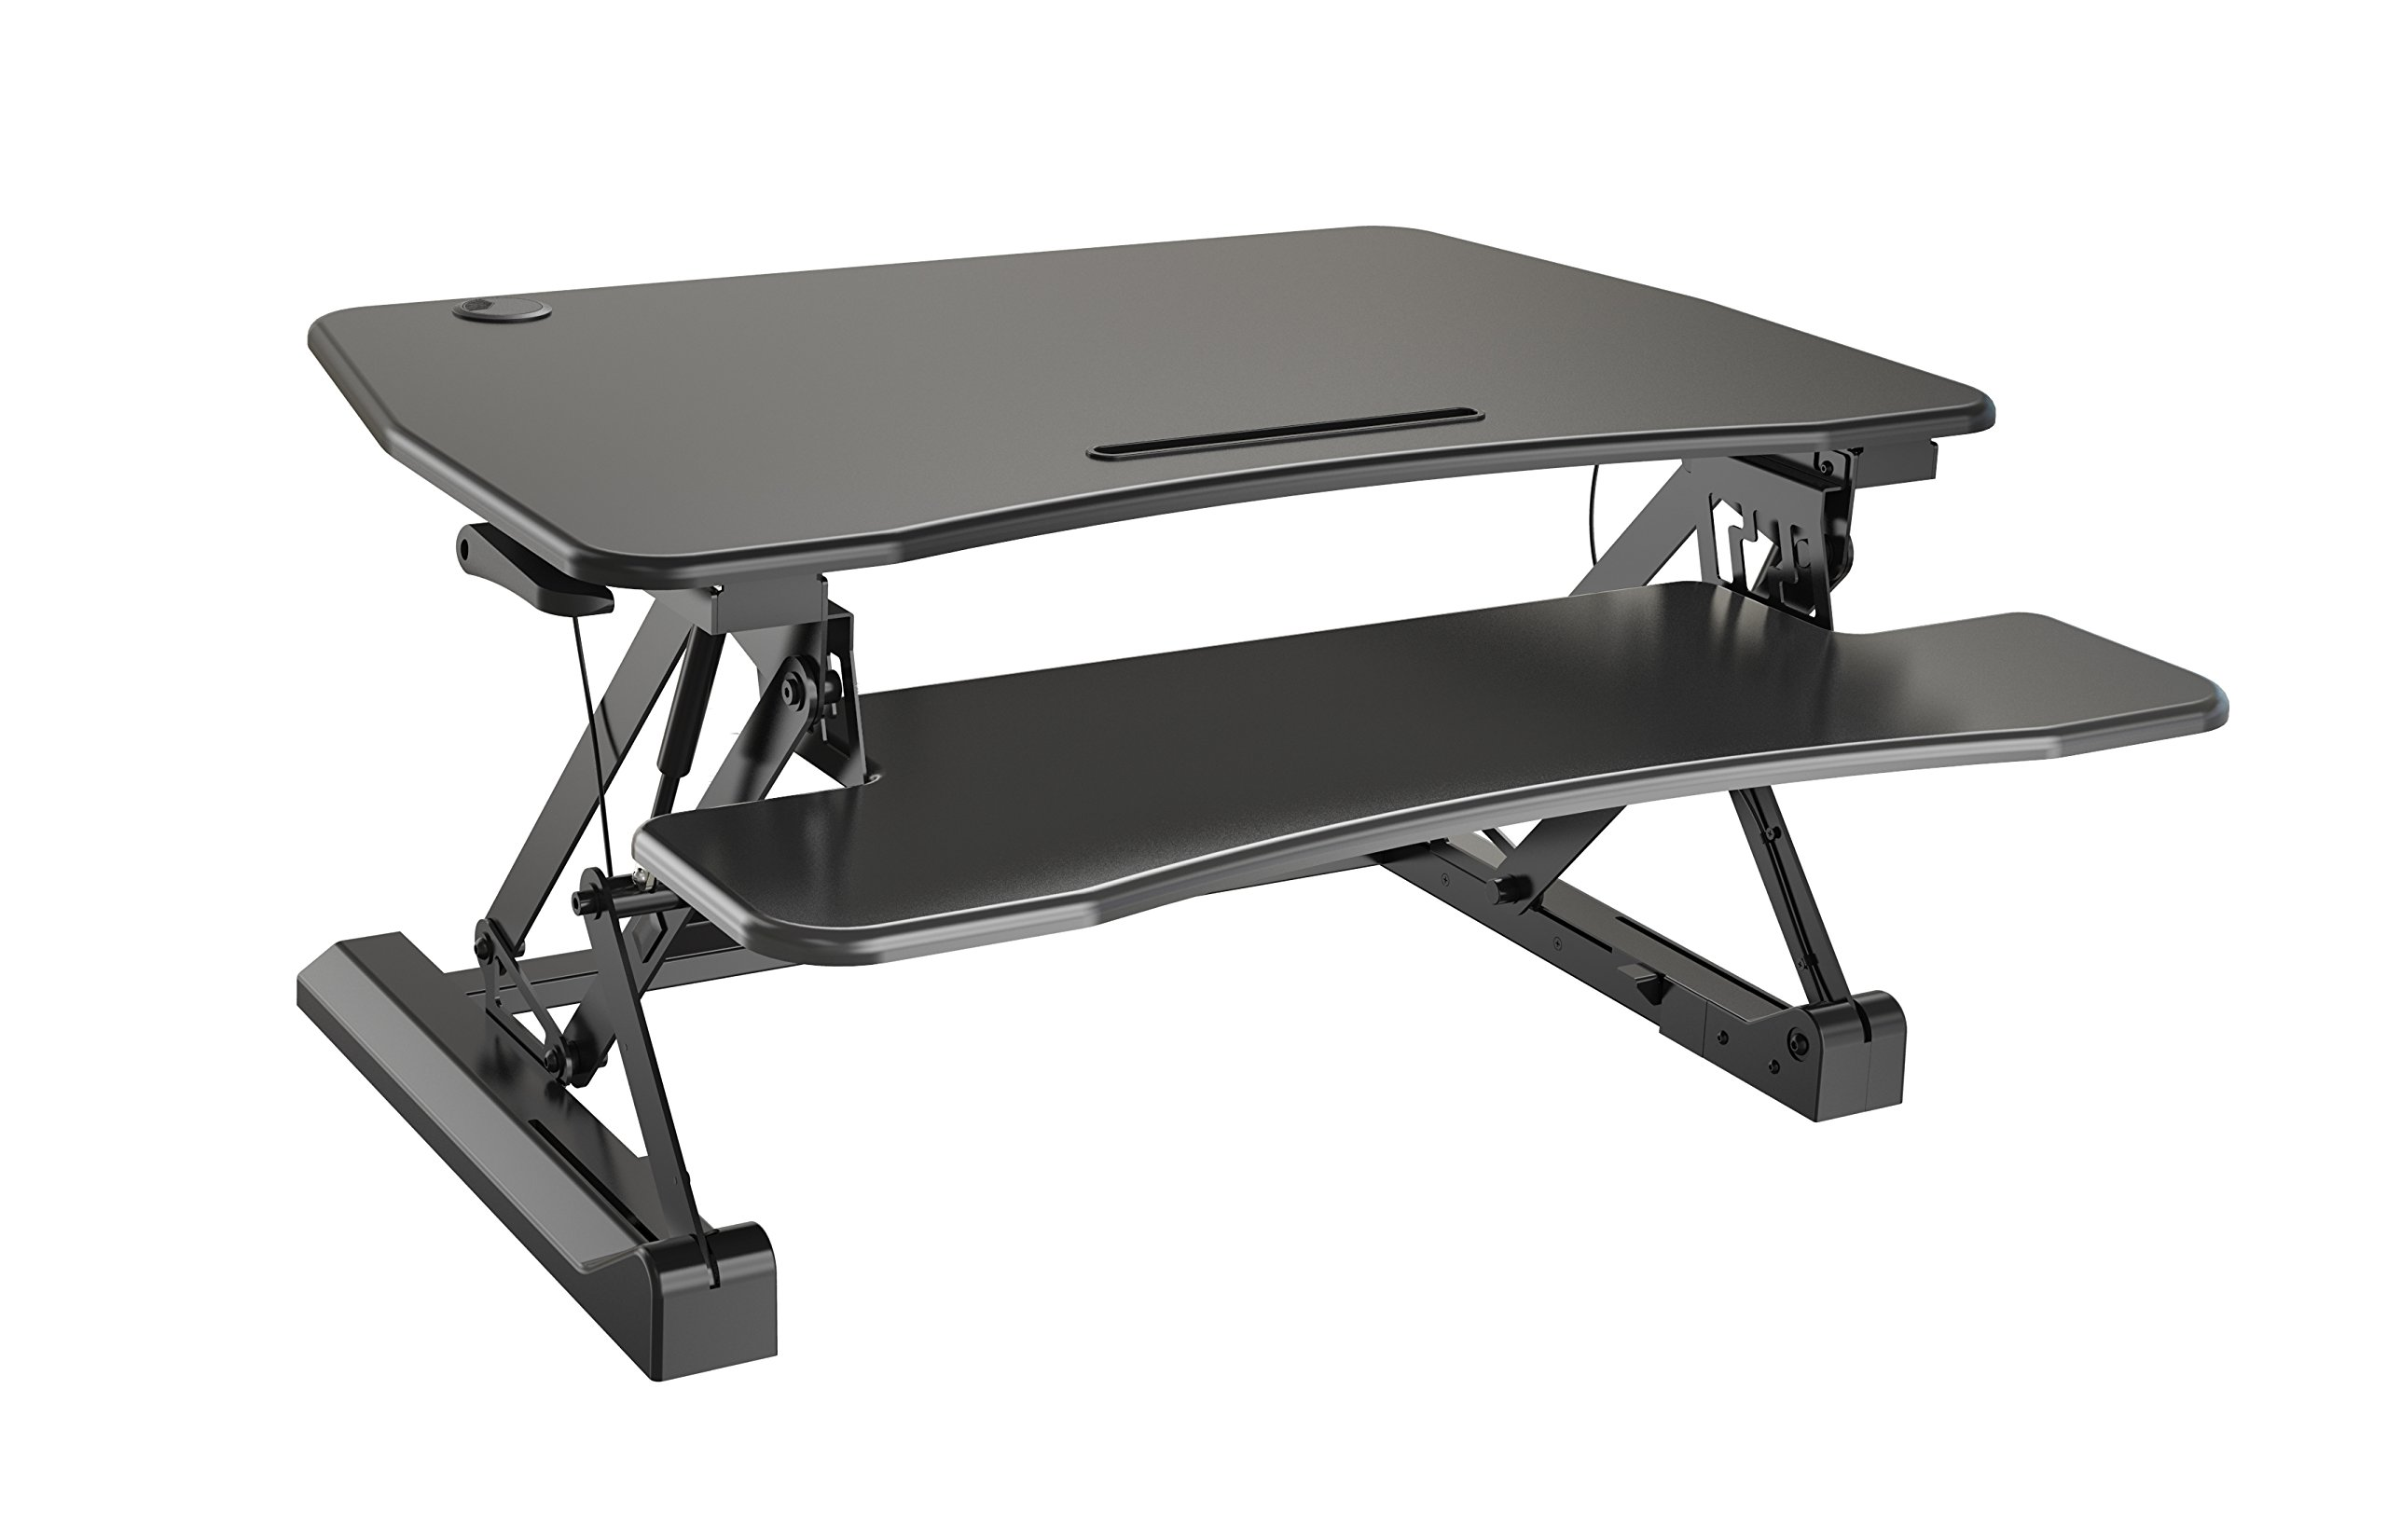 Zeal Height Adjustable Standing Desk Ergonomic Laptop Monitor Standing Dual Riser Sit to Stand Table Computer Workstation Desk (Black) by Zealdesk (Image #1)